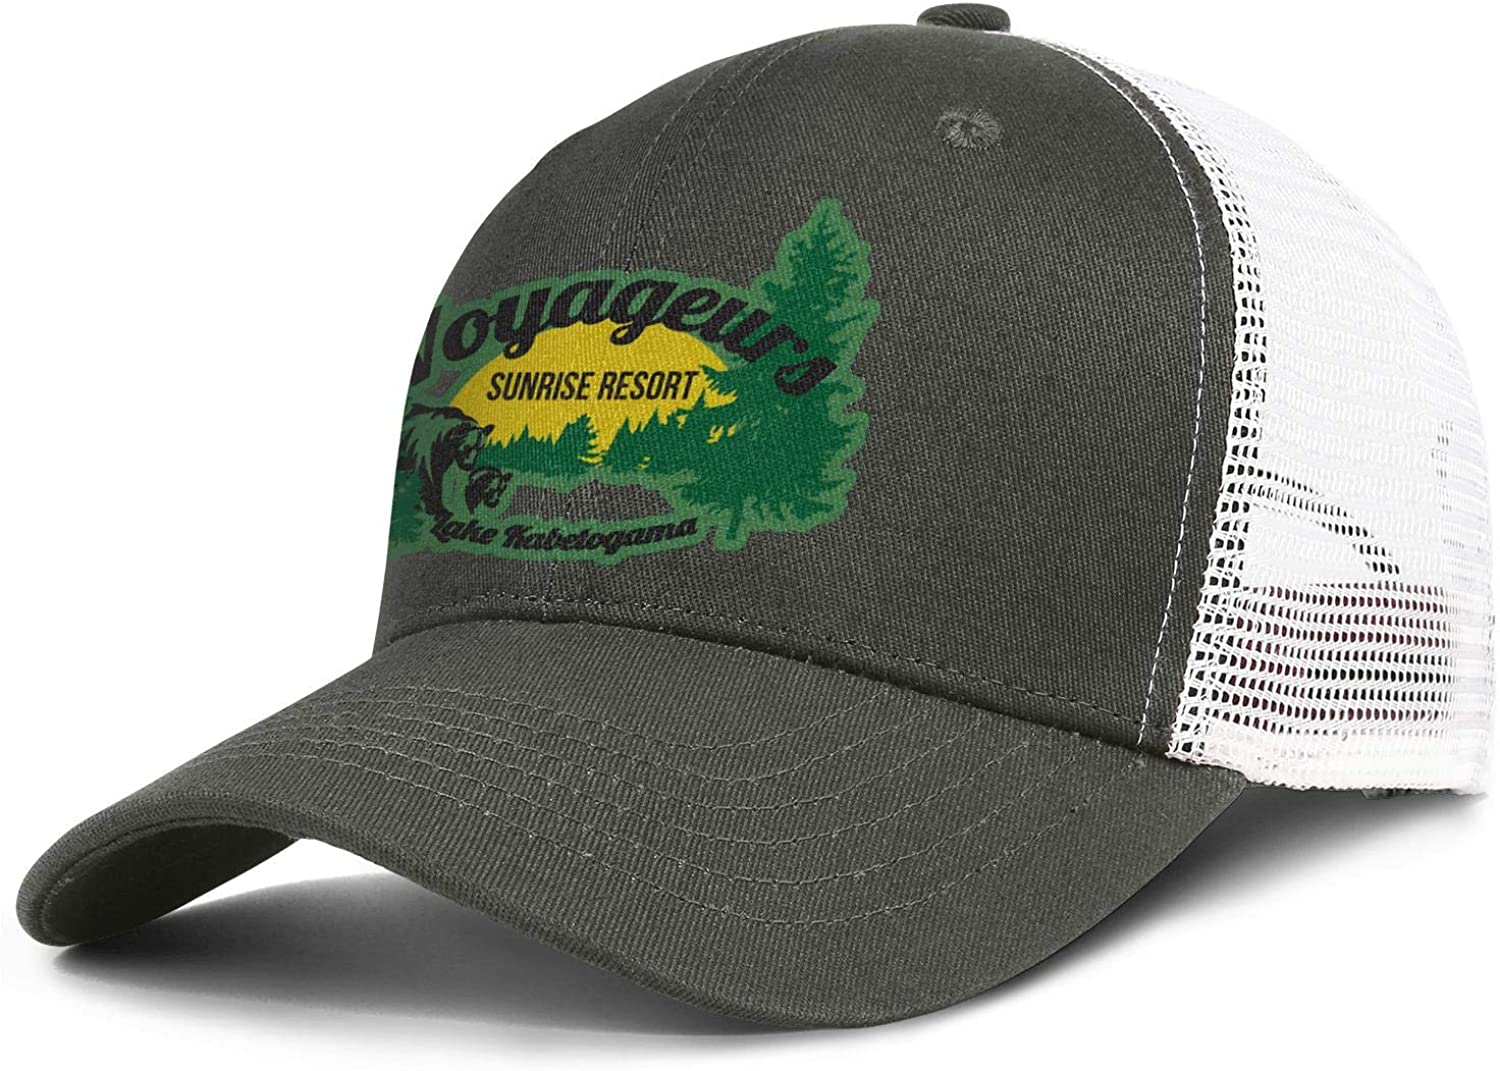 Voyageurs National Park Baseball Hat Man Womens Adjustable Mesh Sports Flat Cap